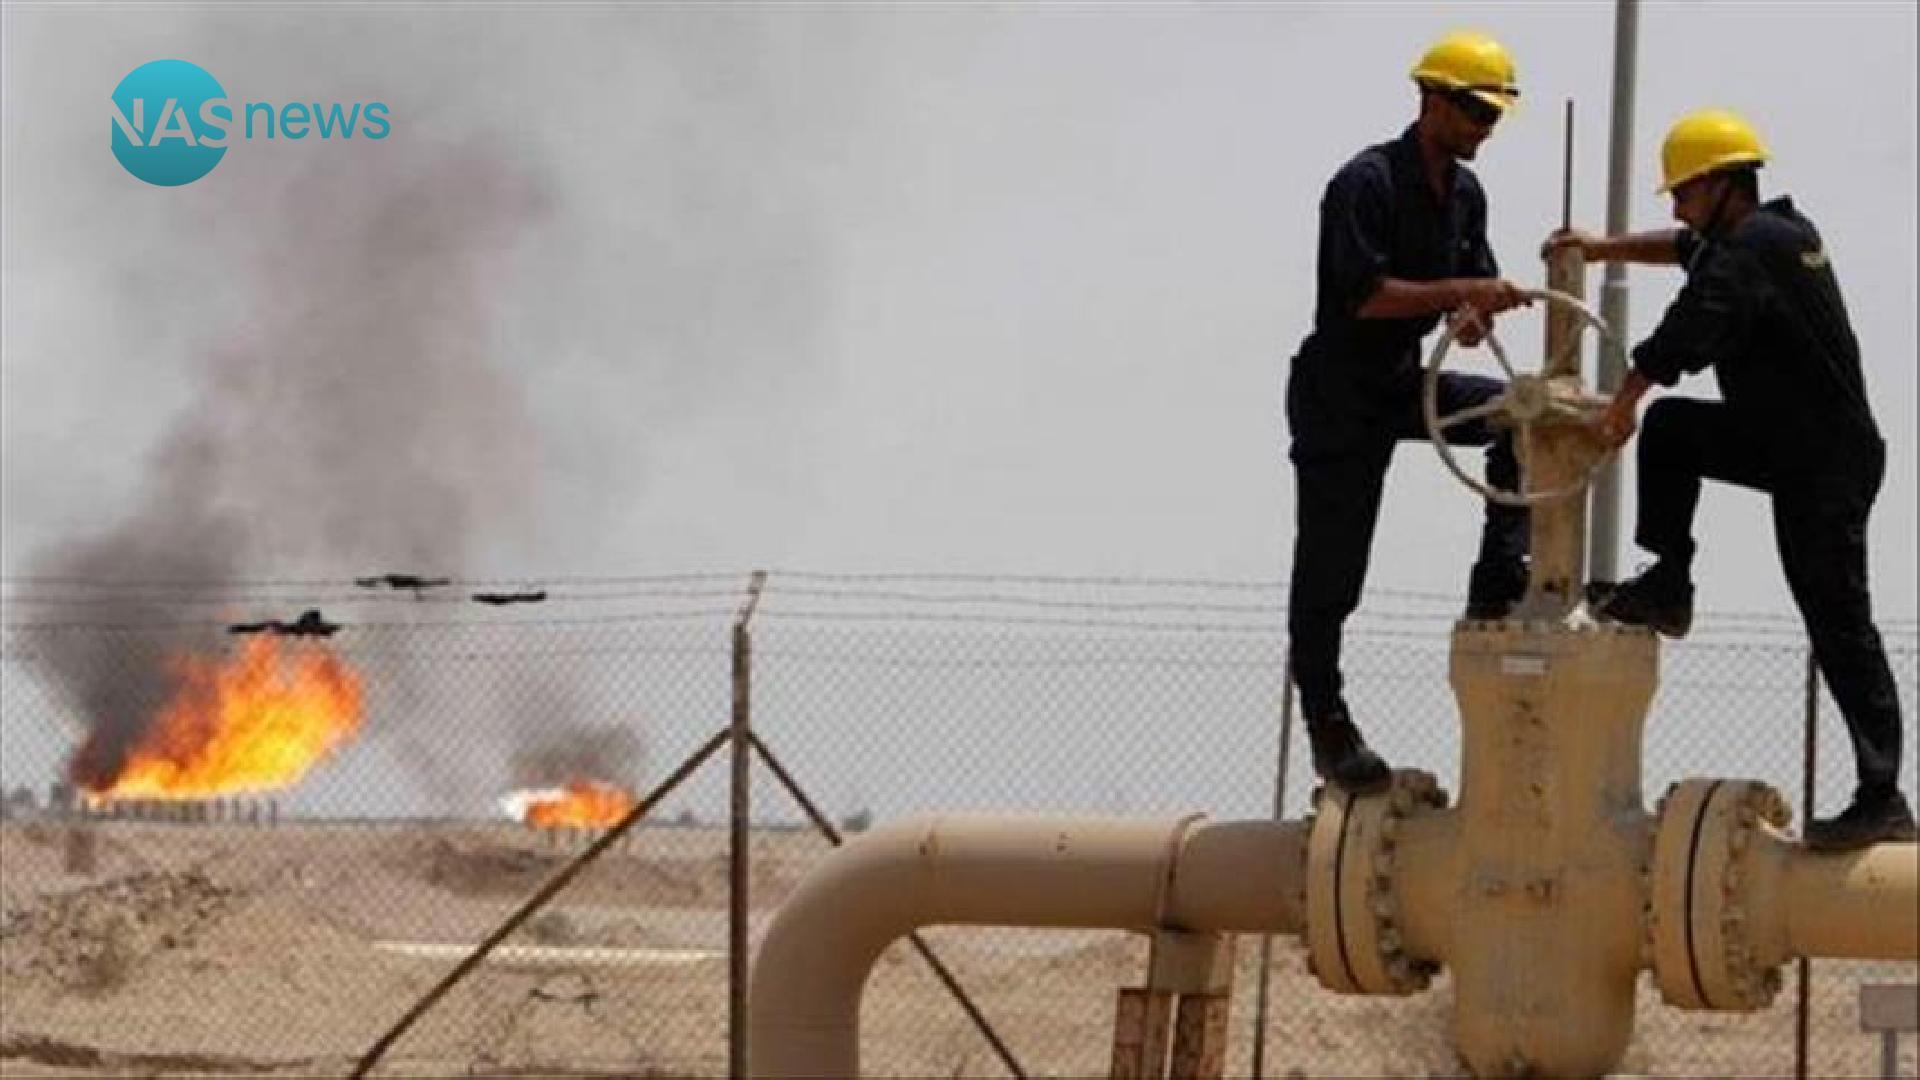 Reuters: Iraq plans to reduce 400 barrels of oil per day from its production